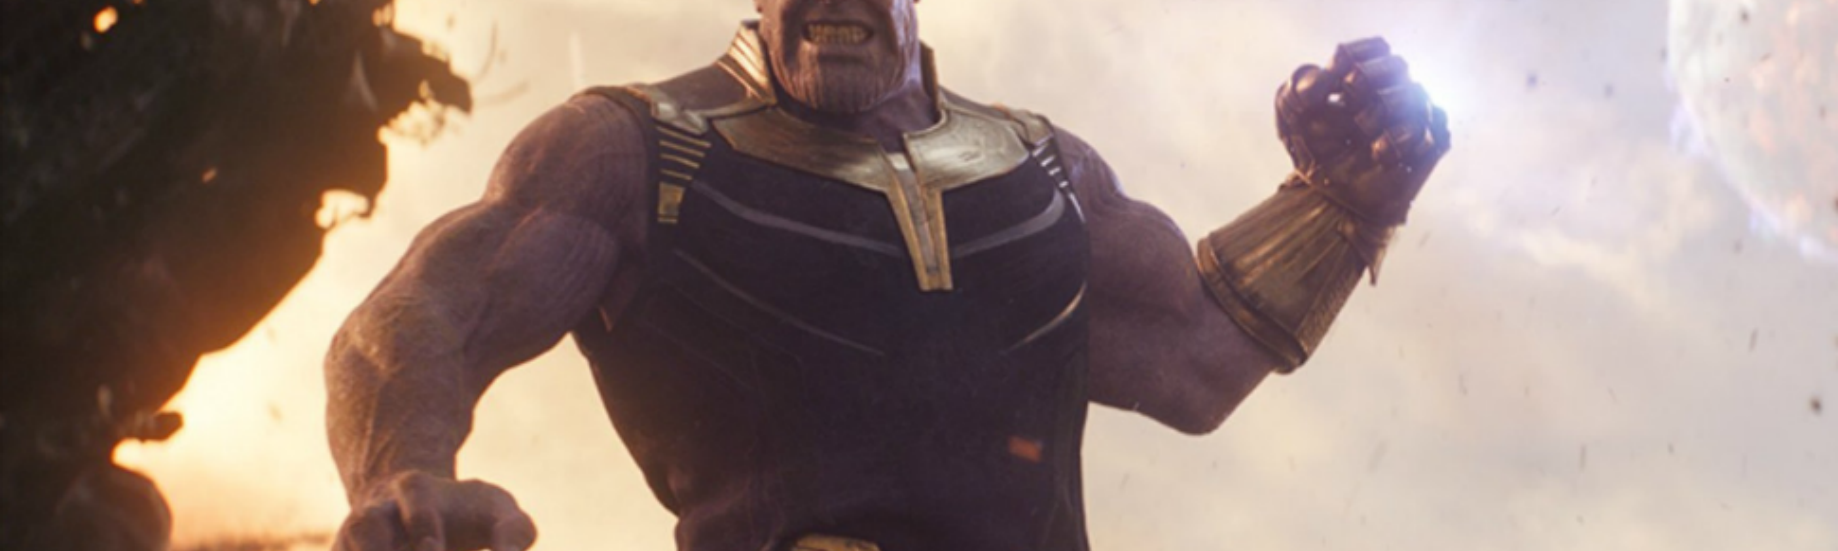 Creating The Infinity Gauntlet of Thanos with JavaScript Objects